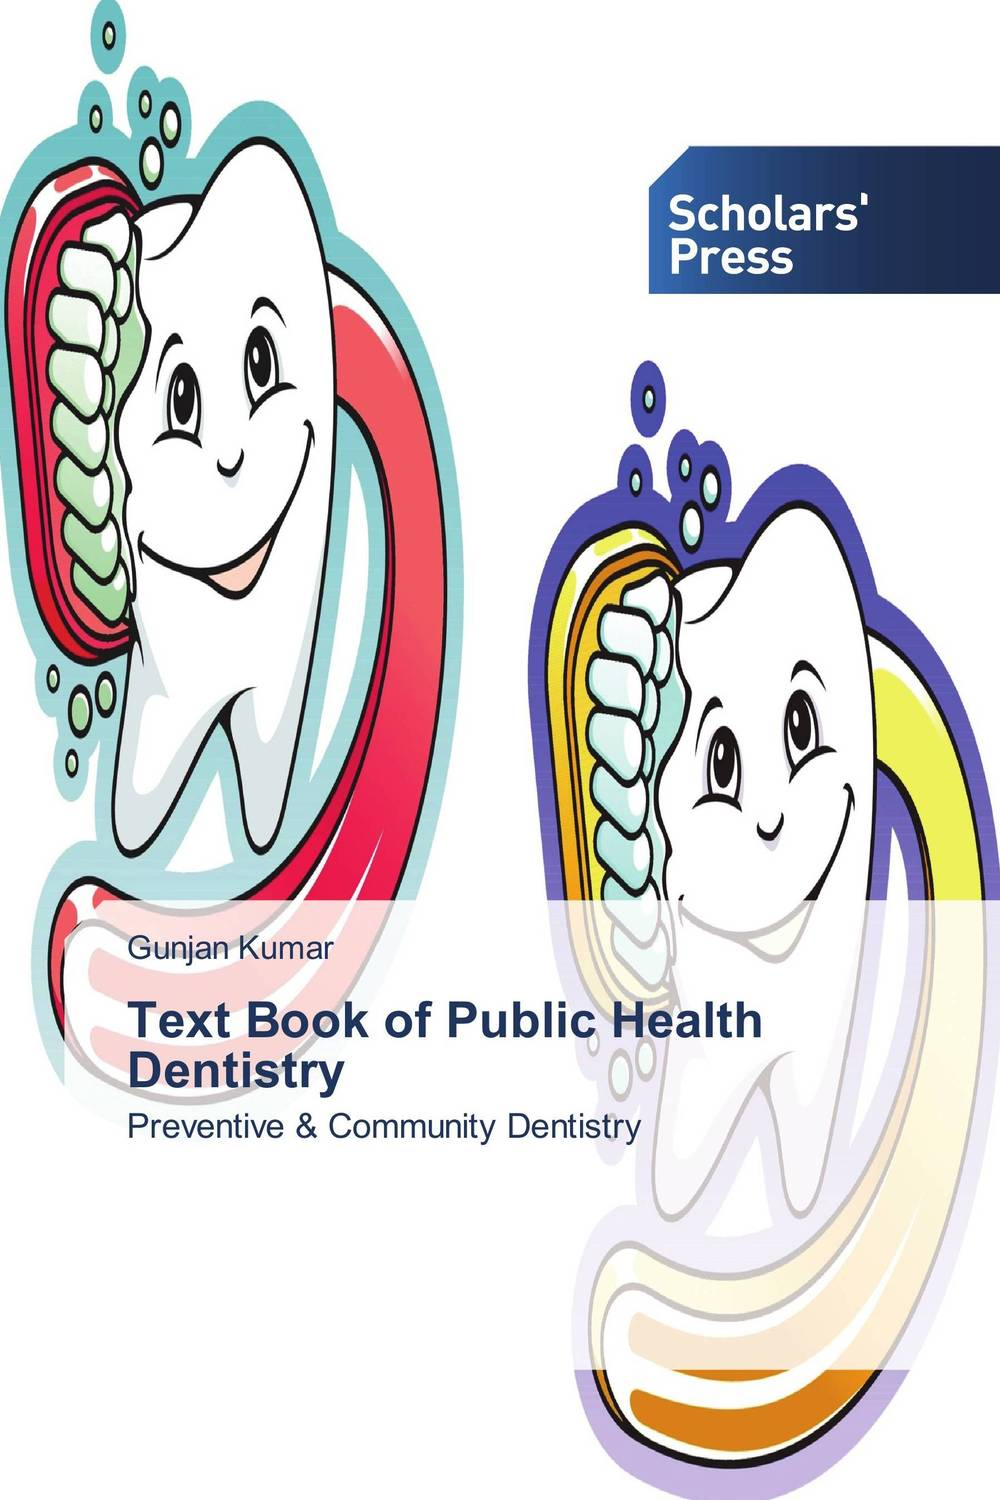 Text Book of Public Health Dentistry poonam mahajan and ajay mahajan concepts in public health dentistry